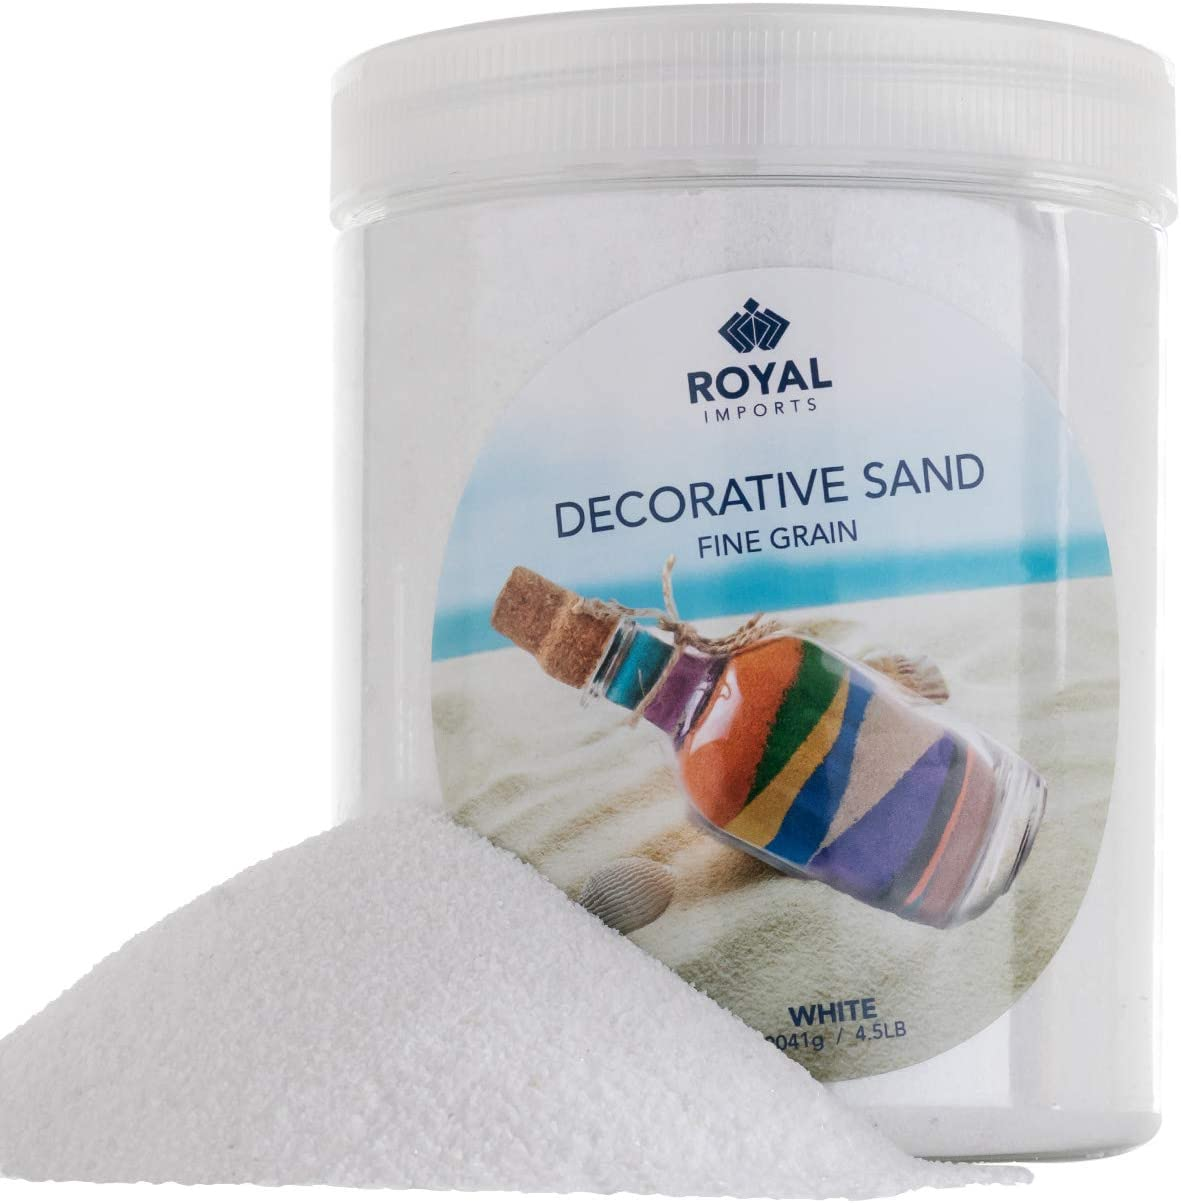 Royal Imports 4.5 LBS Colored Decorative Beach Sand for Vase Filler, Wedding, Home Décor, Crafts and Therapy Play, White